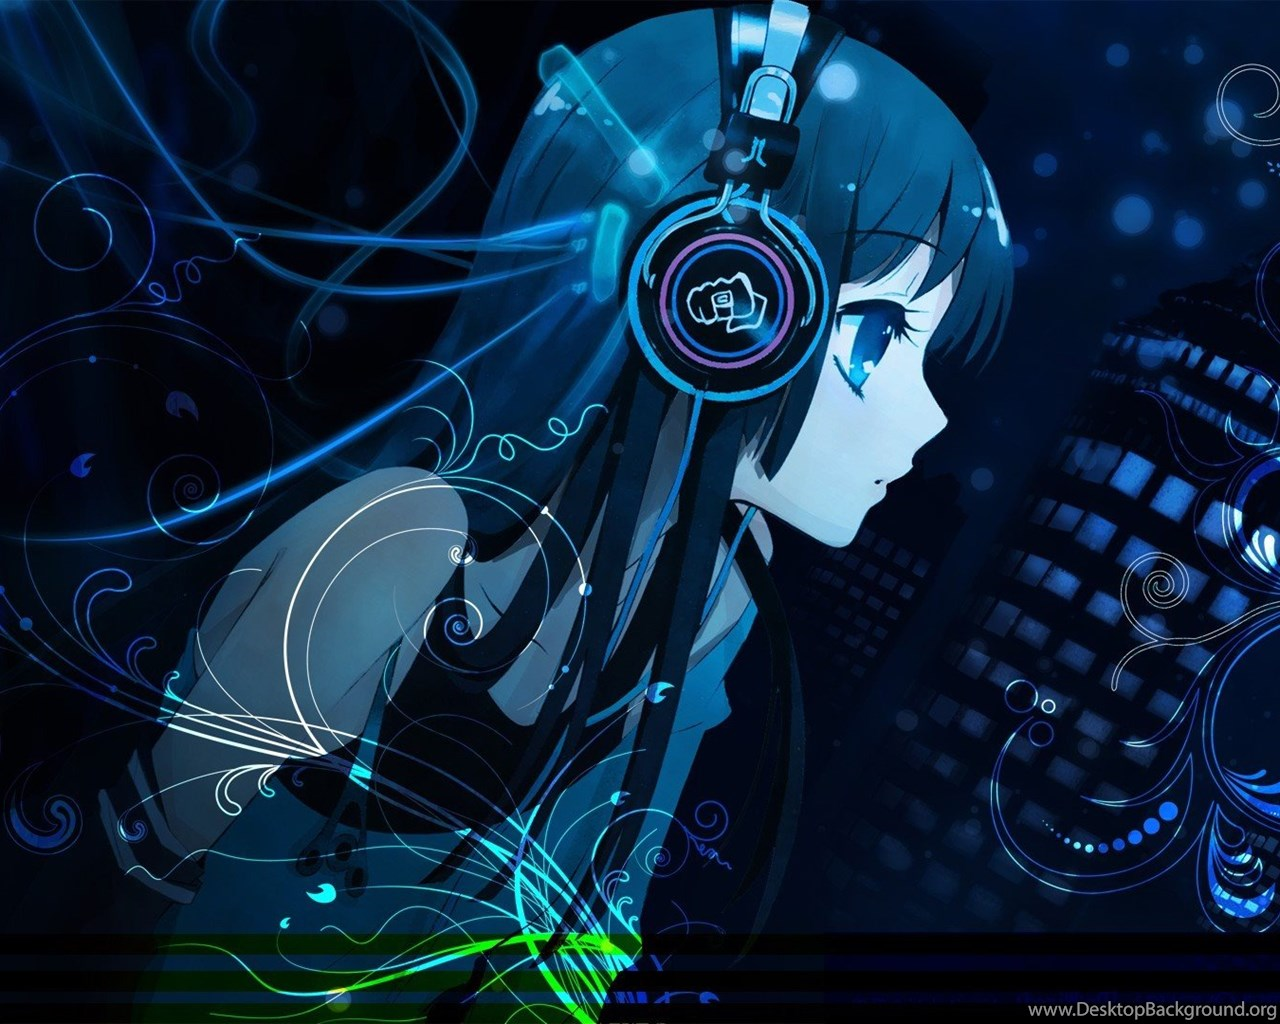 Cute Wallpaper For Iphone 4s Cute Girl Anime Wallpapers Listening Music With